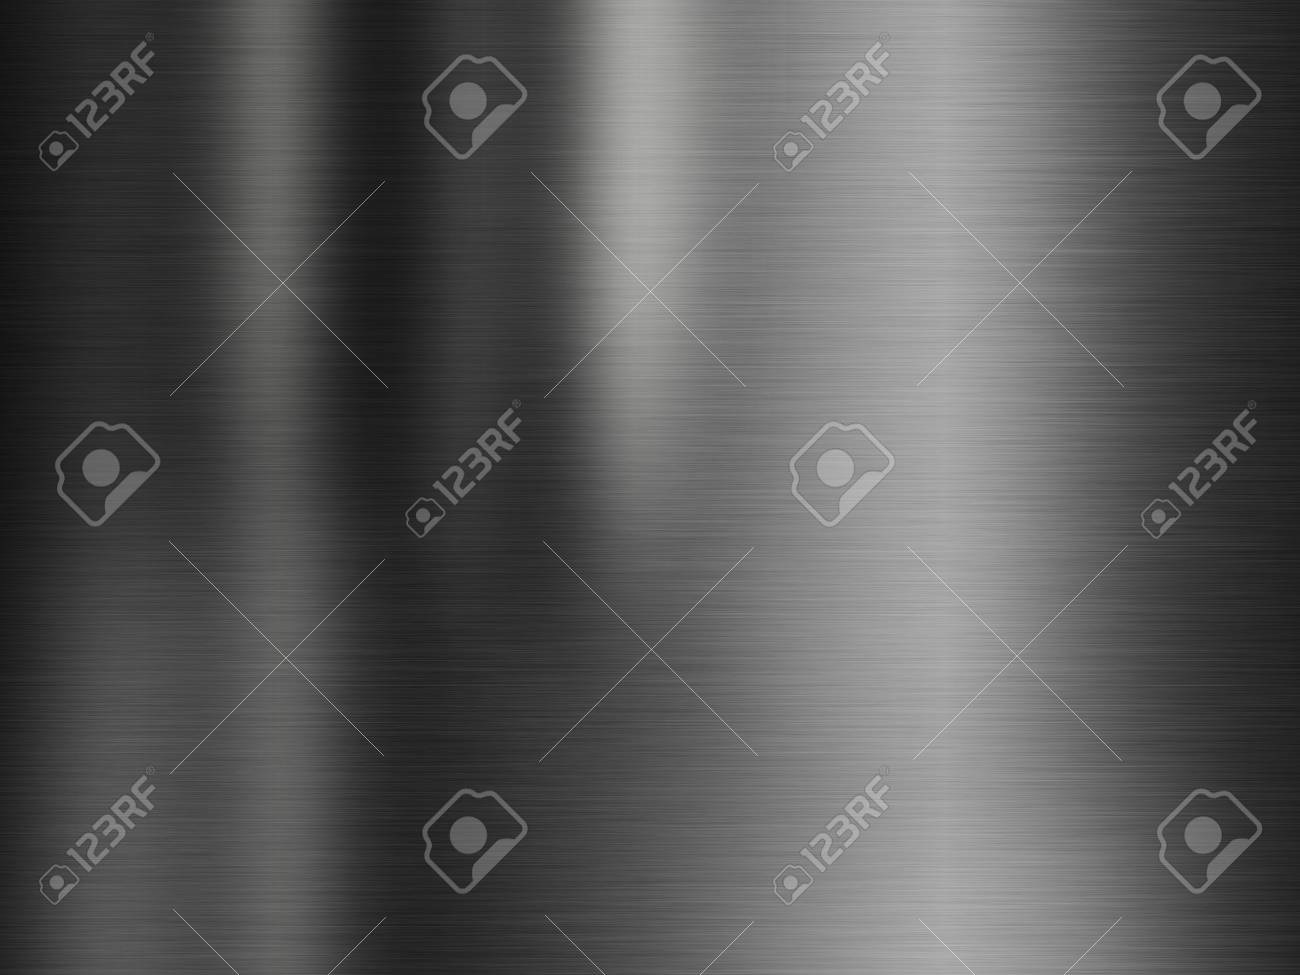 Stainless steel texture or metal texture background Banque d'images - 75076756